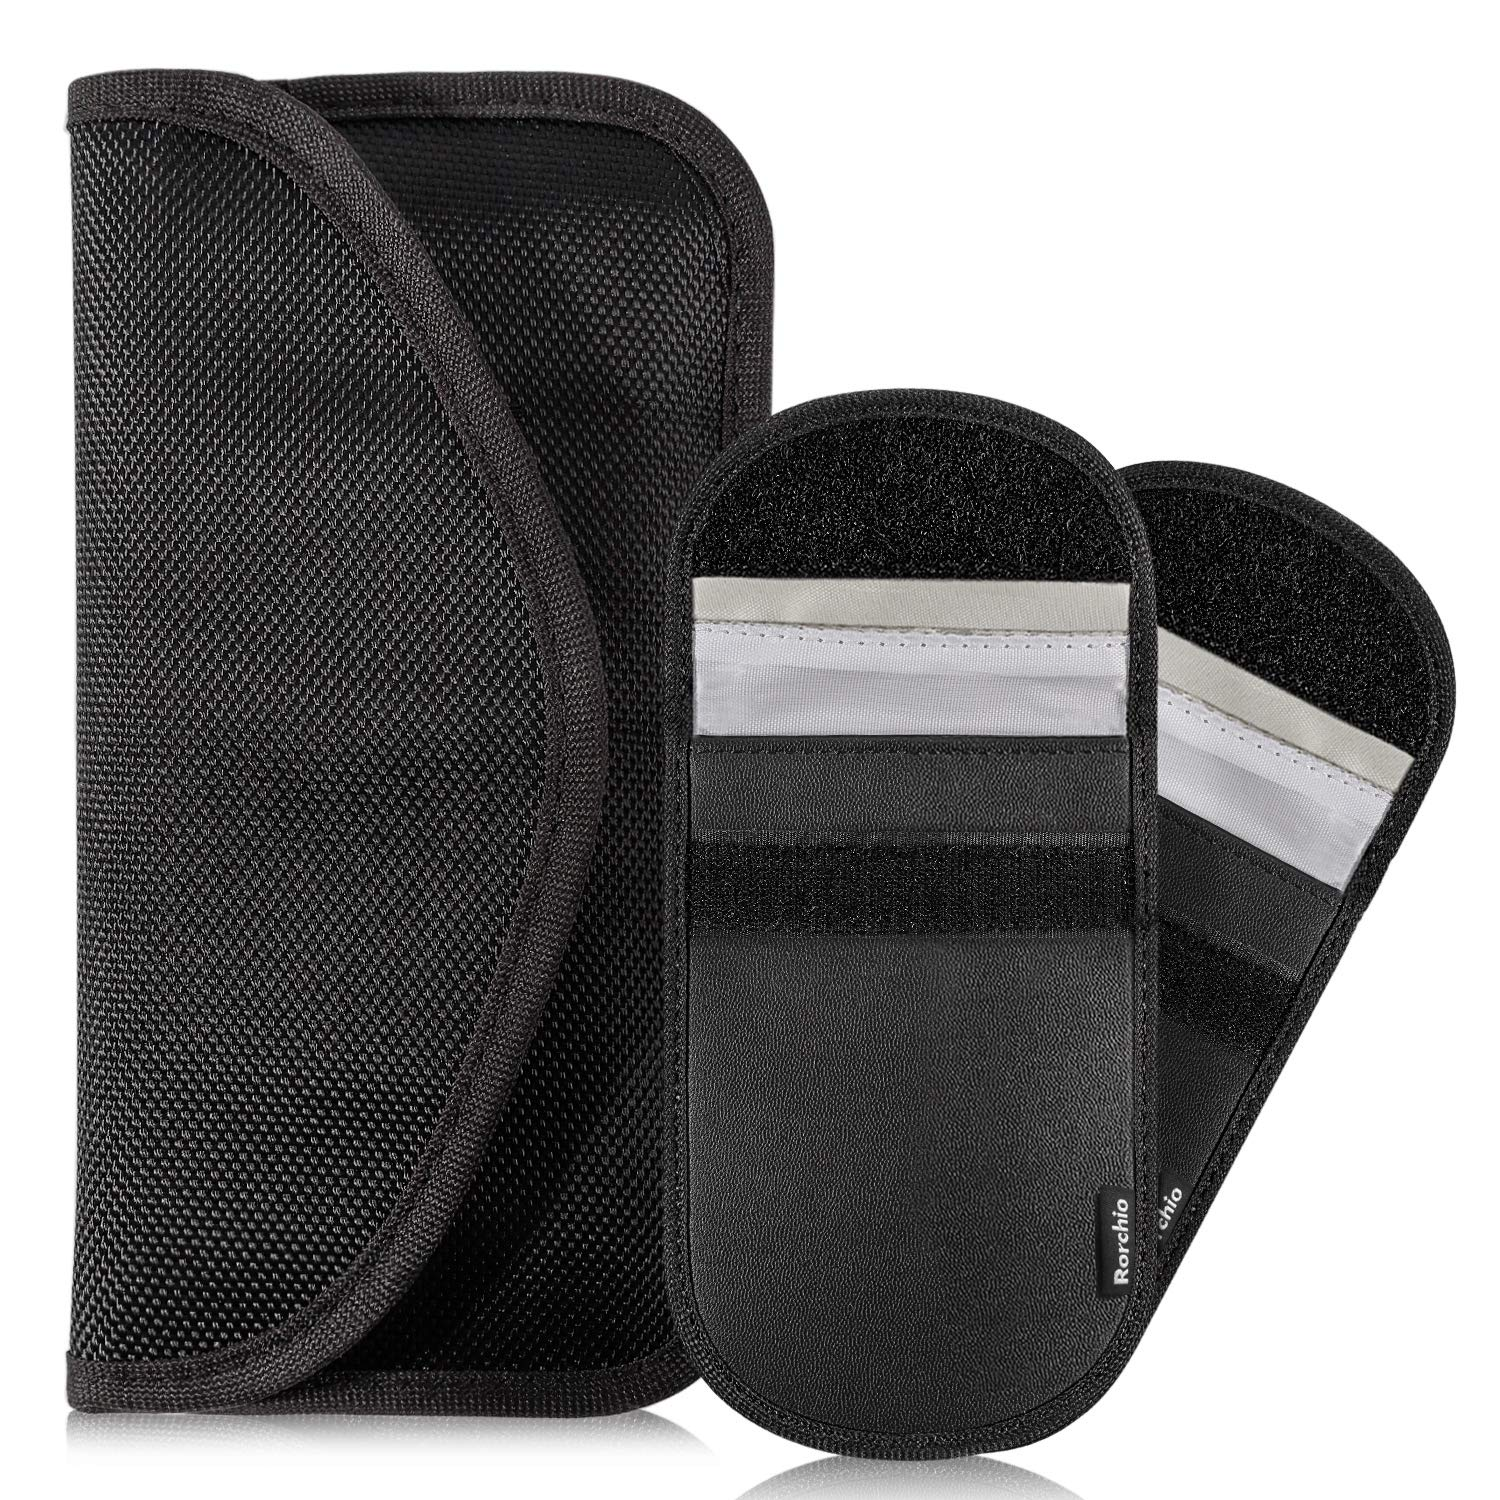 a67c7398d4 Rorchio Large Faraday Bag for Keyless Fobs Cell Phone and 2pcs Car Key  Signal Blocker Pouch RFID Blocking Credit Card Protector, PU Leather and  Polyester, ...